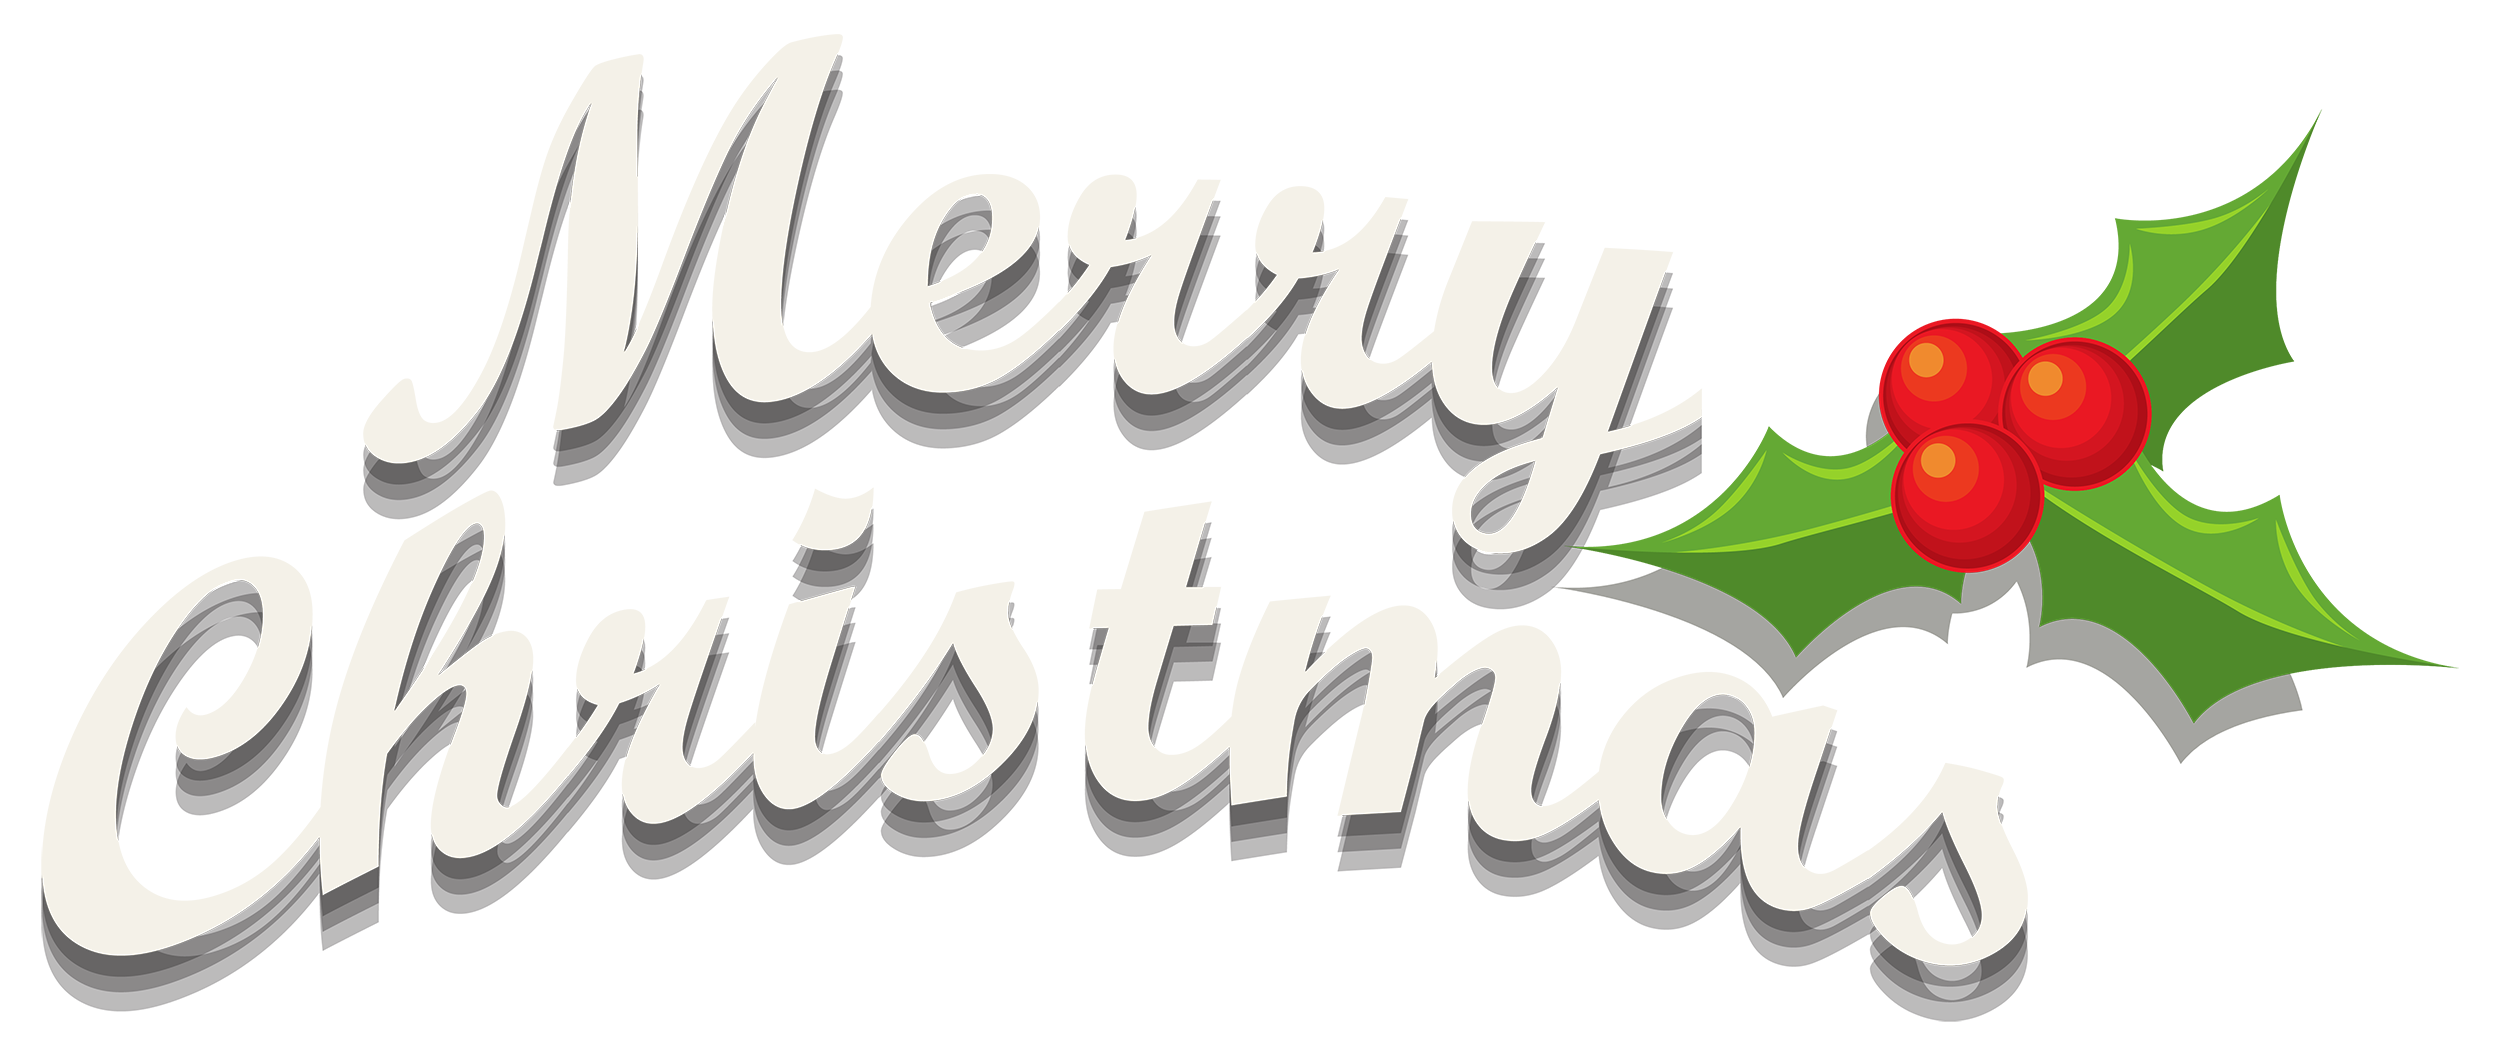 Merry christmas png images. Decor with mistletoe clipart